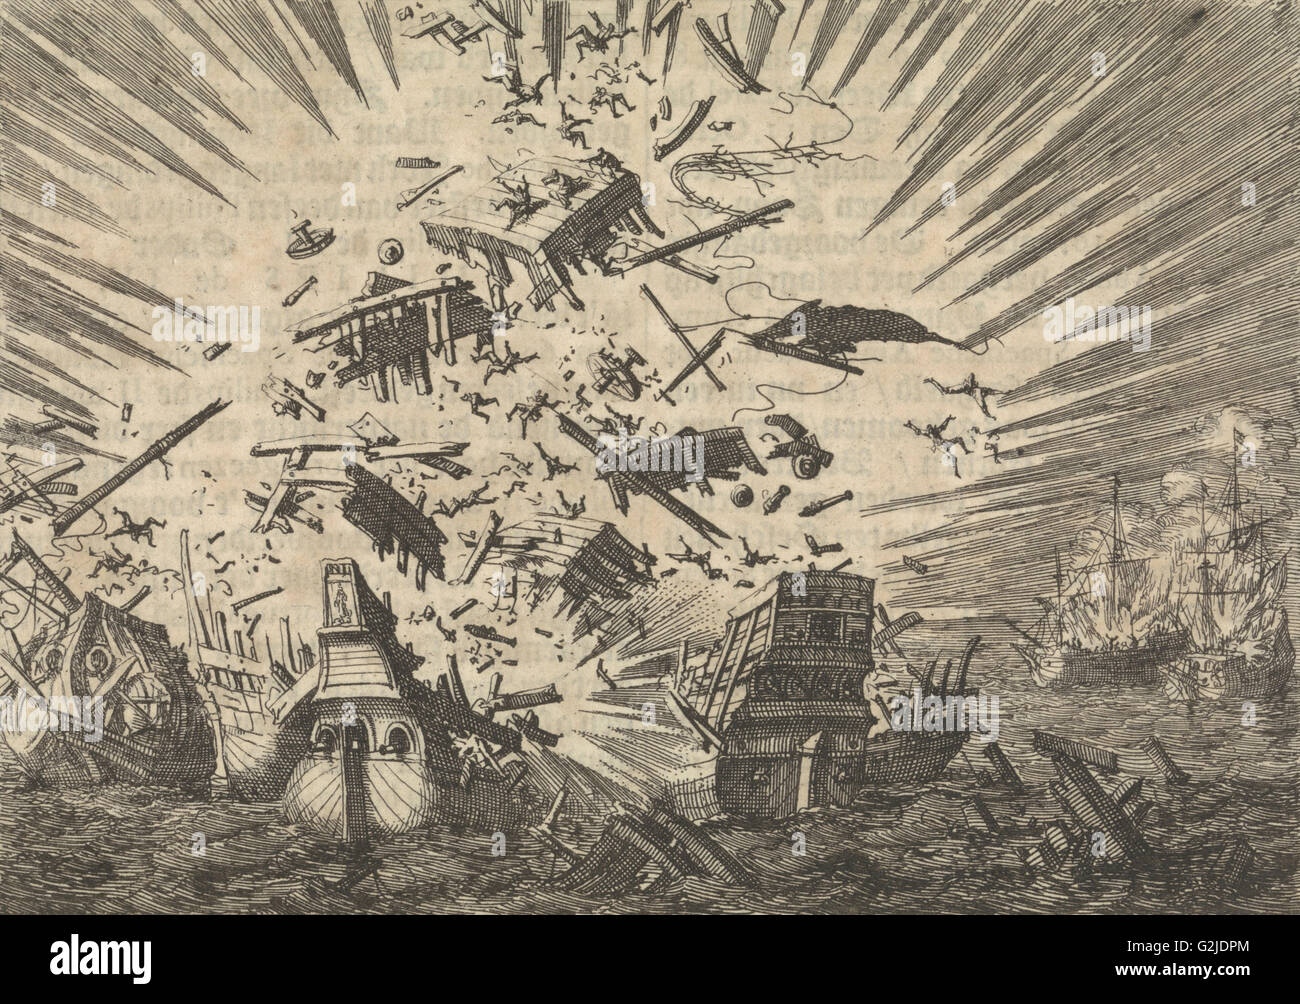 "The Dutch ship ""Walcheren"" explodes along with five Portuguese ships, 1631, Jan Luyken, Pieter van der Aa (I), 1698 Stock Photo"